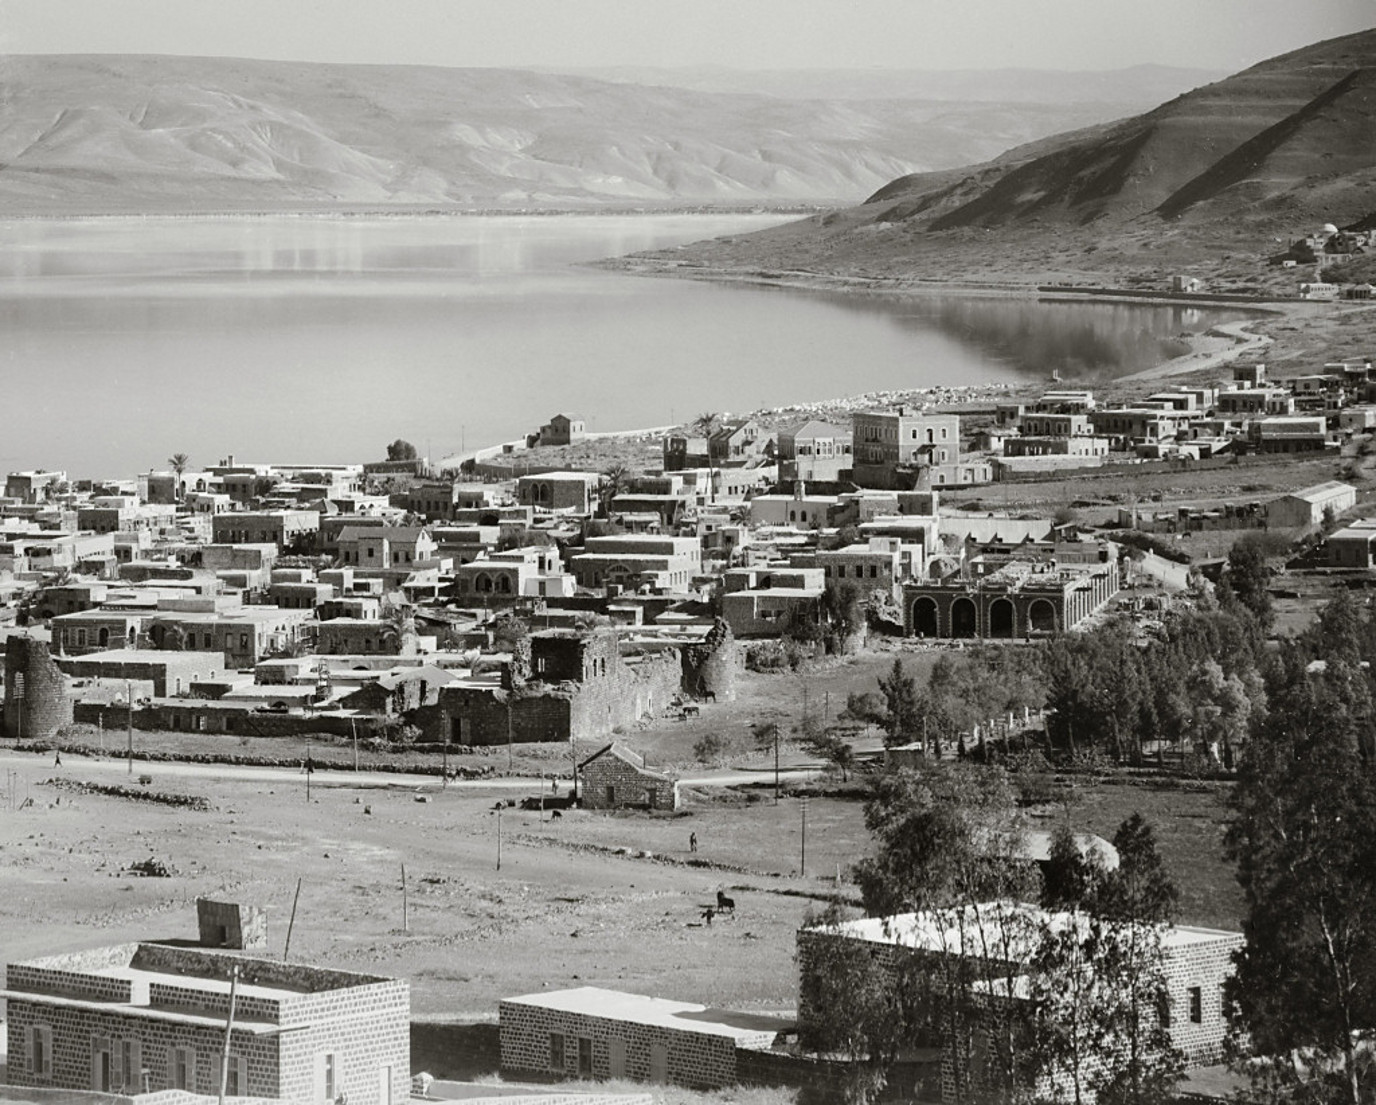 Tiberias - طبريه : TIBERIAS - Late 19th, early 20th c. 83 - Tiberias and Sea of Galilee (Matson collection)